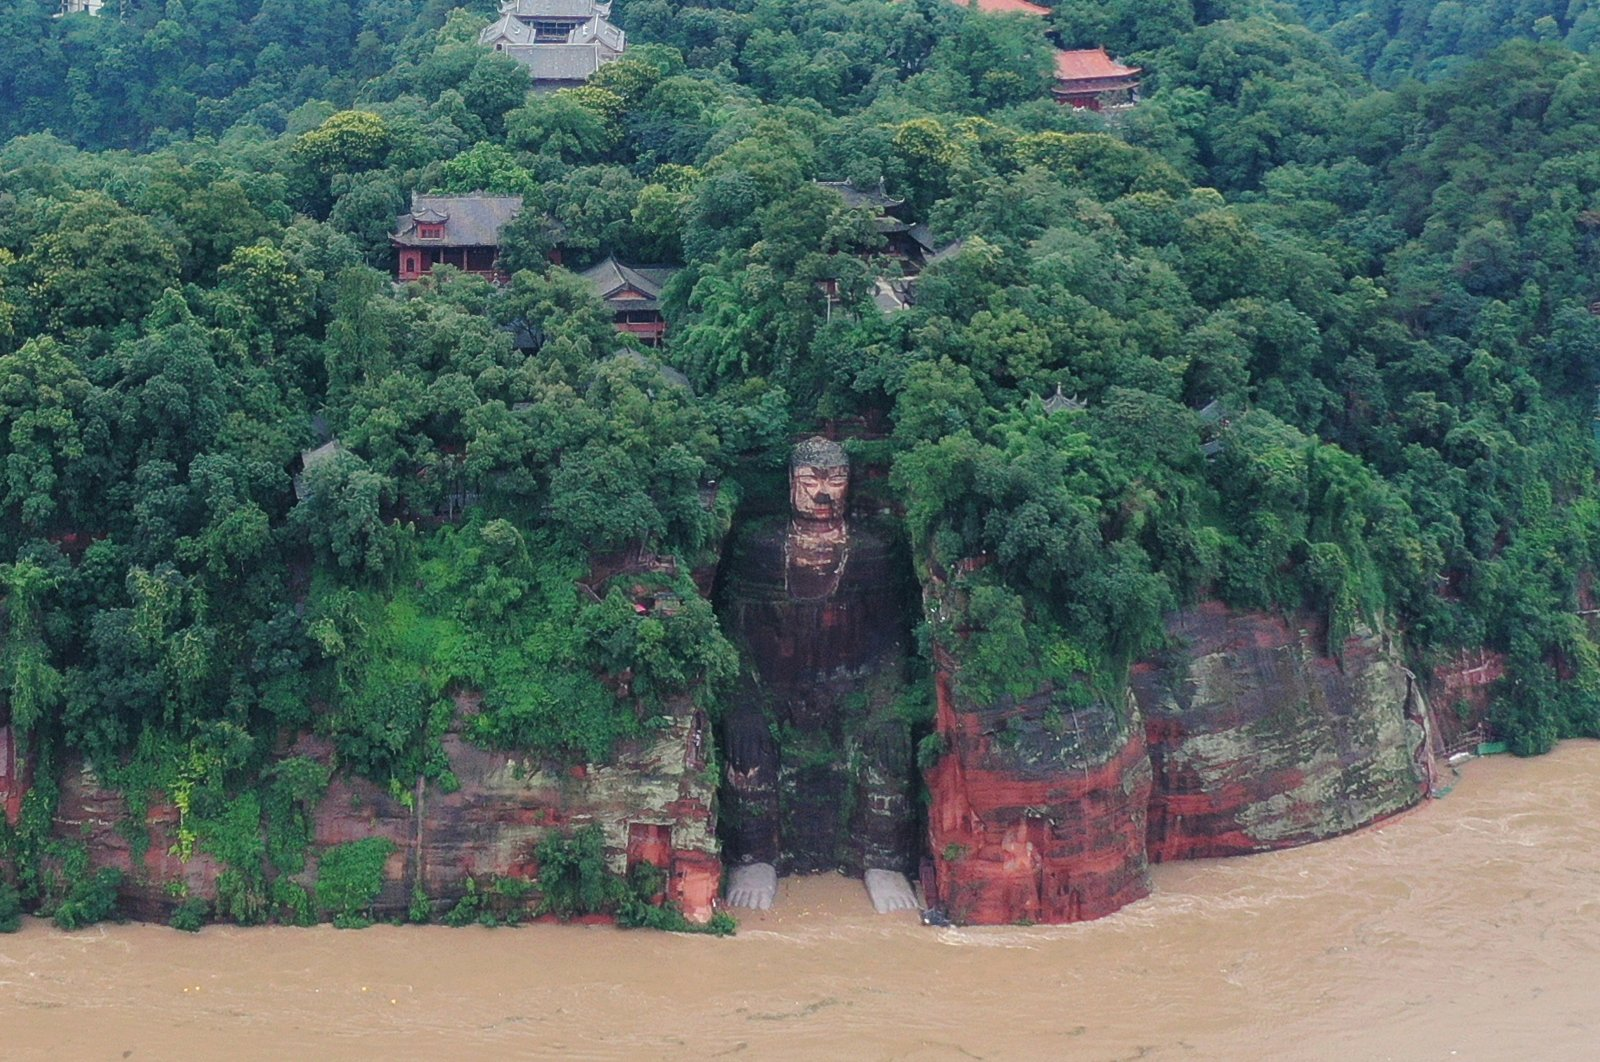 Floodwater reaches the Leshan Giant Buddha's feet following heavy rainfall, in Leshan, Sichuan province, China, Aug. 18, 2020. (China Daily via Reuters)